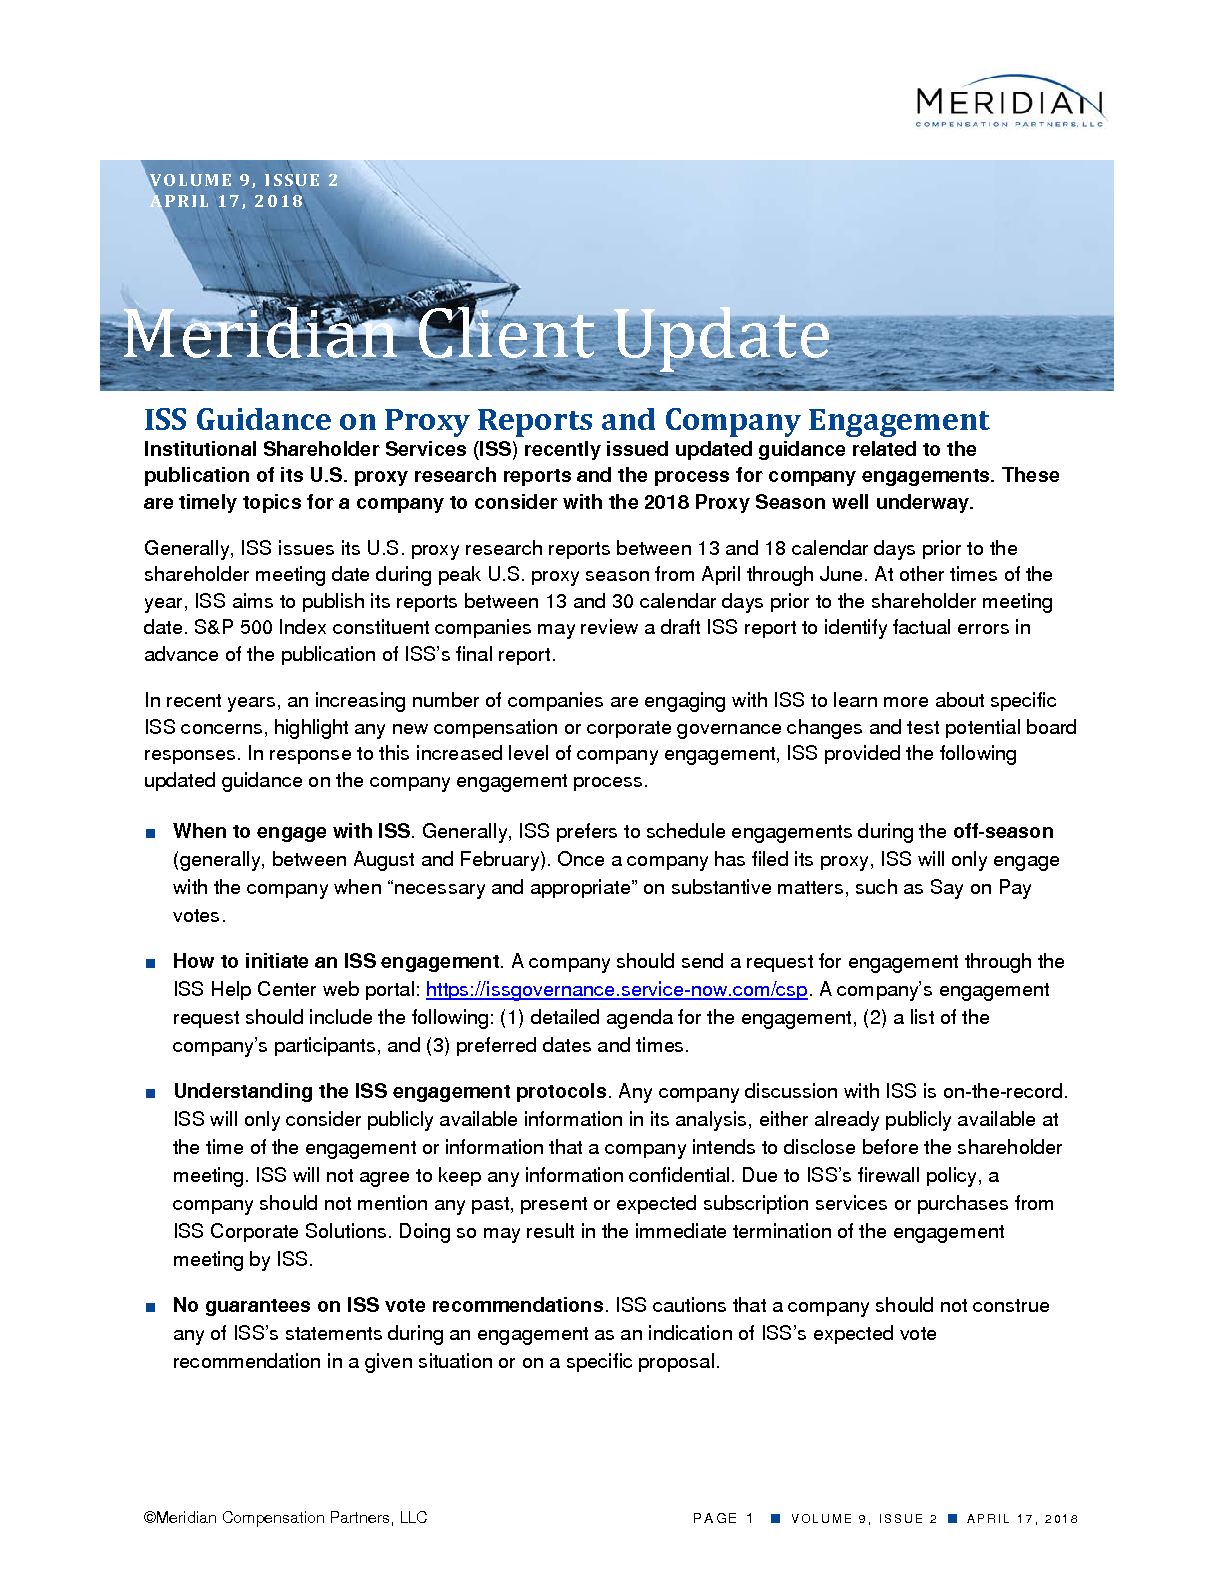 ISS Guidance on Proxy Reports and Company Engagement (PDF)